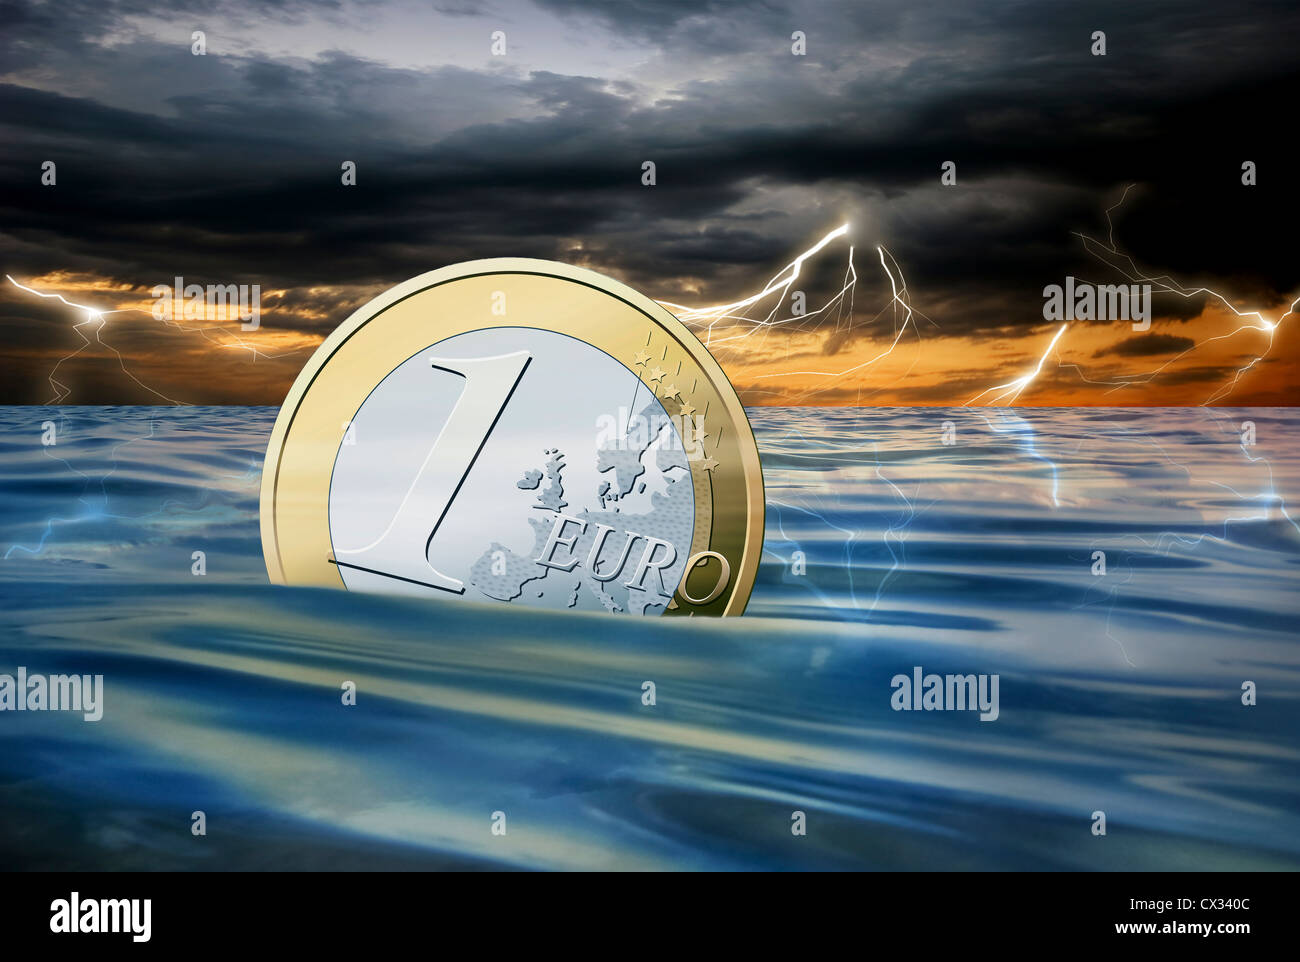 Euro coin drowning in the sea during a thunderstorm - Stock Image